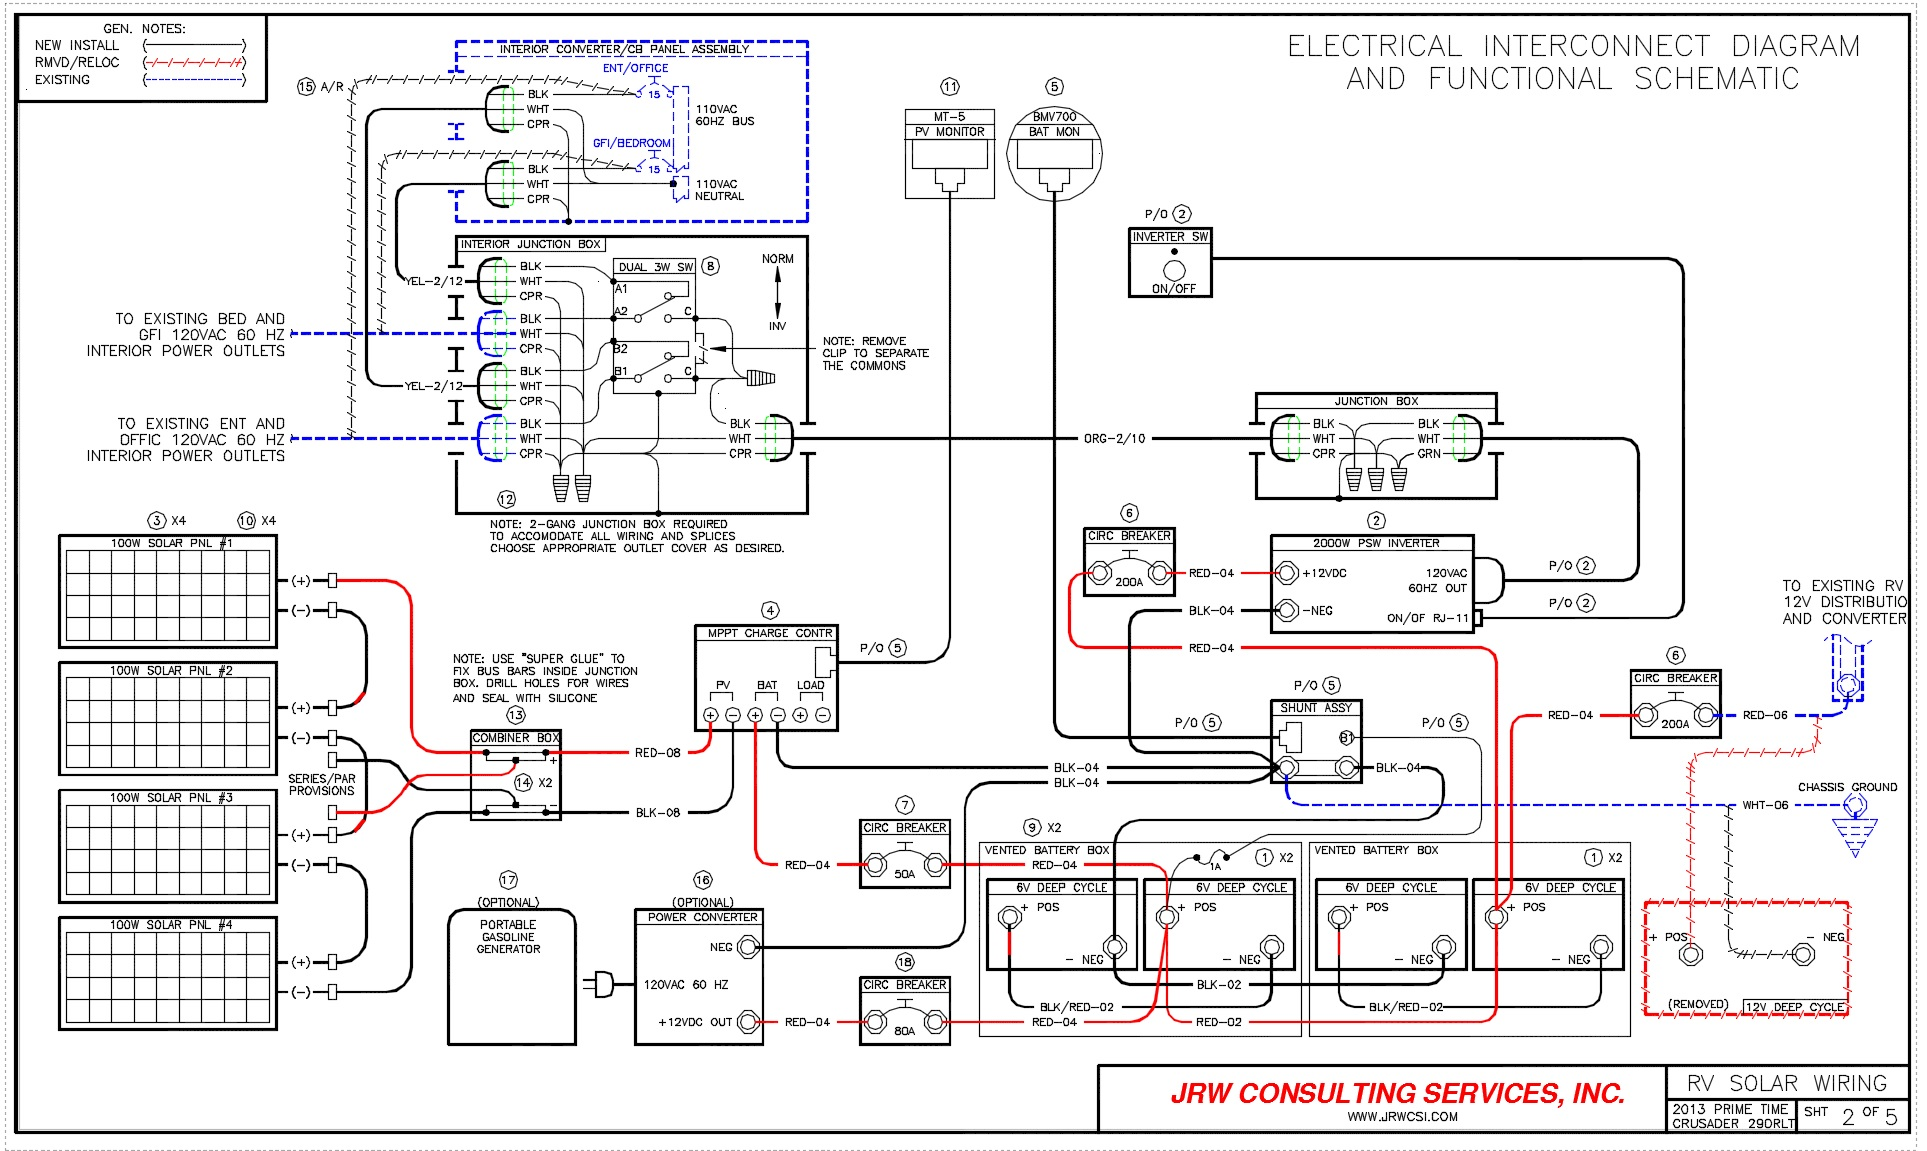 RV SOLAR SHT 22 rv monitor panel wiring diagram rv electrical system wiring rv inverter wiring diagram at fashall.co